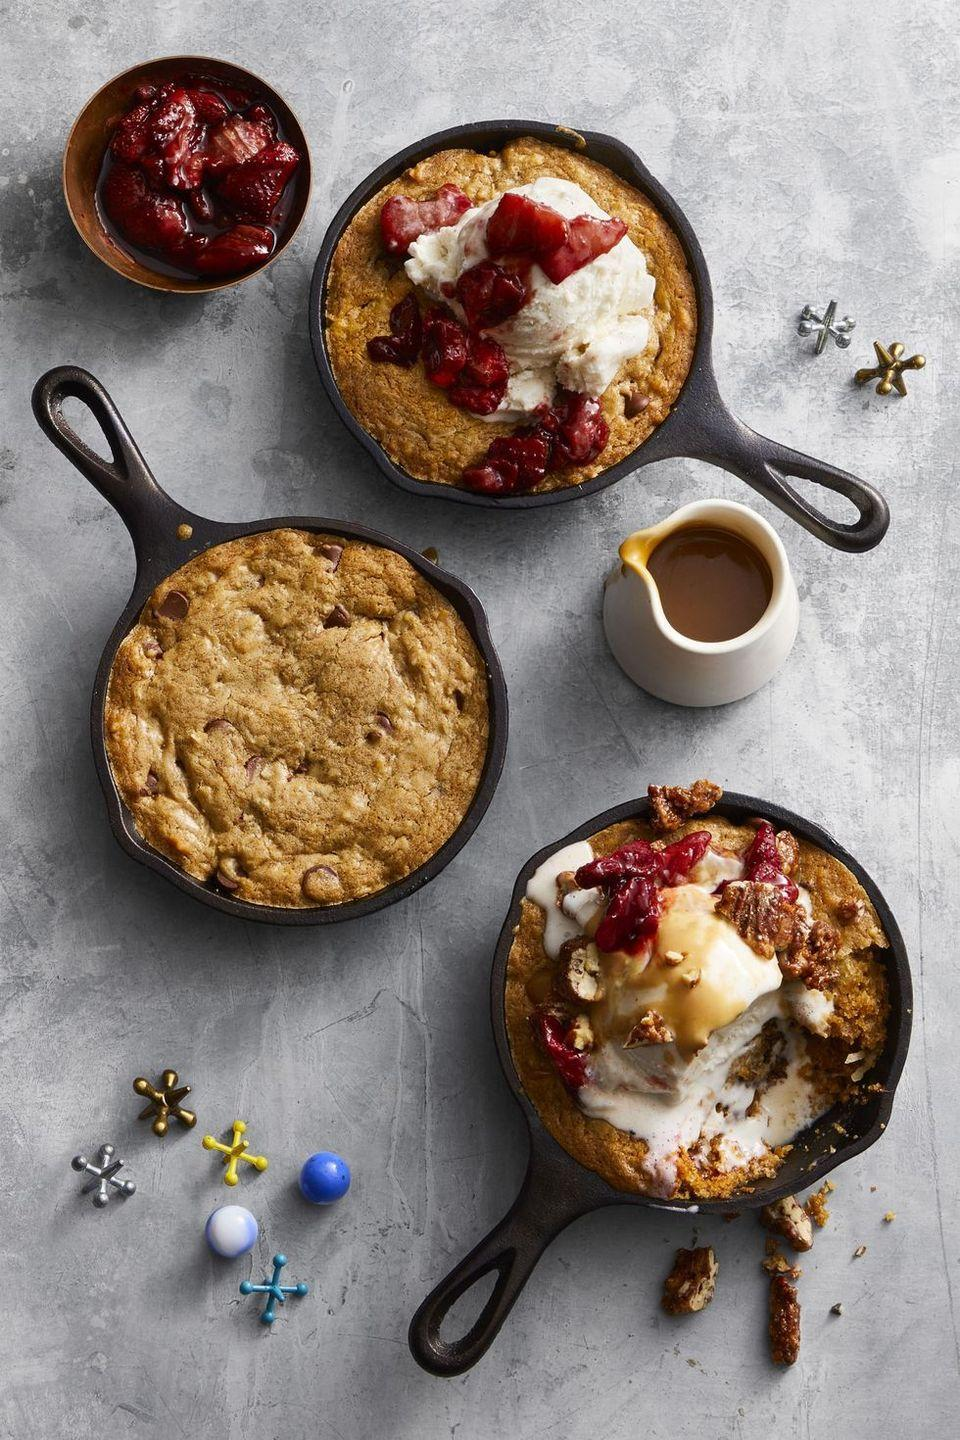 """<p>Celebrate the end of a long week with fun-to-make dessert that you can customize with candied pecans, miso caramel, maple-roasted strawberries — or all of the above.</p><p><em><a href=""""https://www.goodhousekeeping.com/food-recipes/dessert/a47671/skillet-cookie-sundaes-recipe/"""" rel=""""nofollow noopener"""" target=""""_blank"""" data-ylk=""""slk:Get the recipe for Skillet Cookie Sundaes »"""" class=""""link rapid-noclick-resp"""">Get the recipe for Skillet Cookie Sundaes »</a></em></p>"""